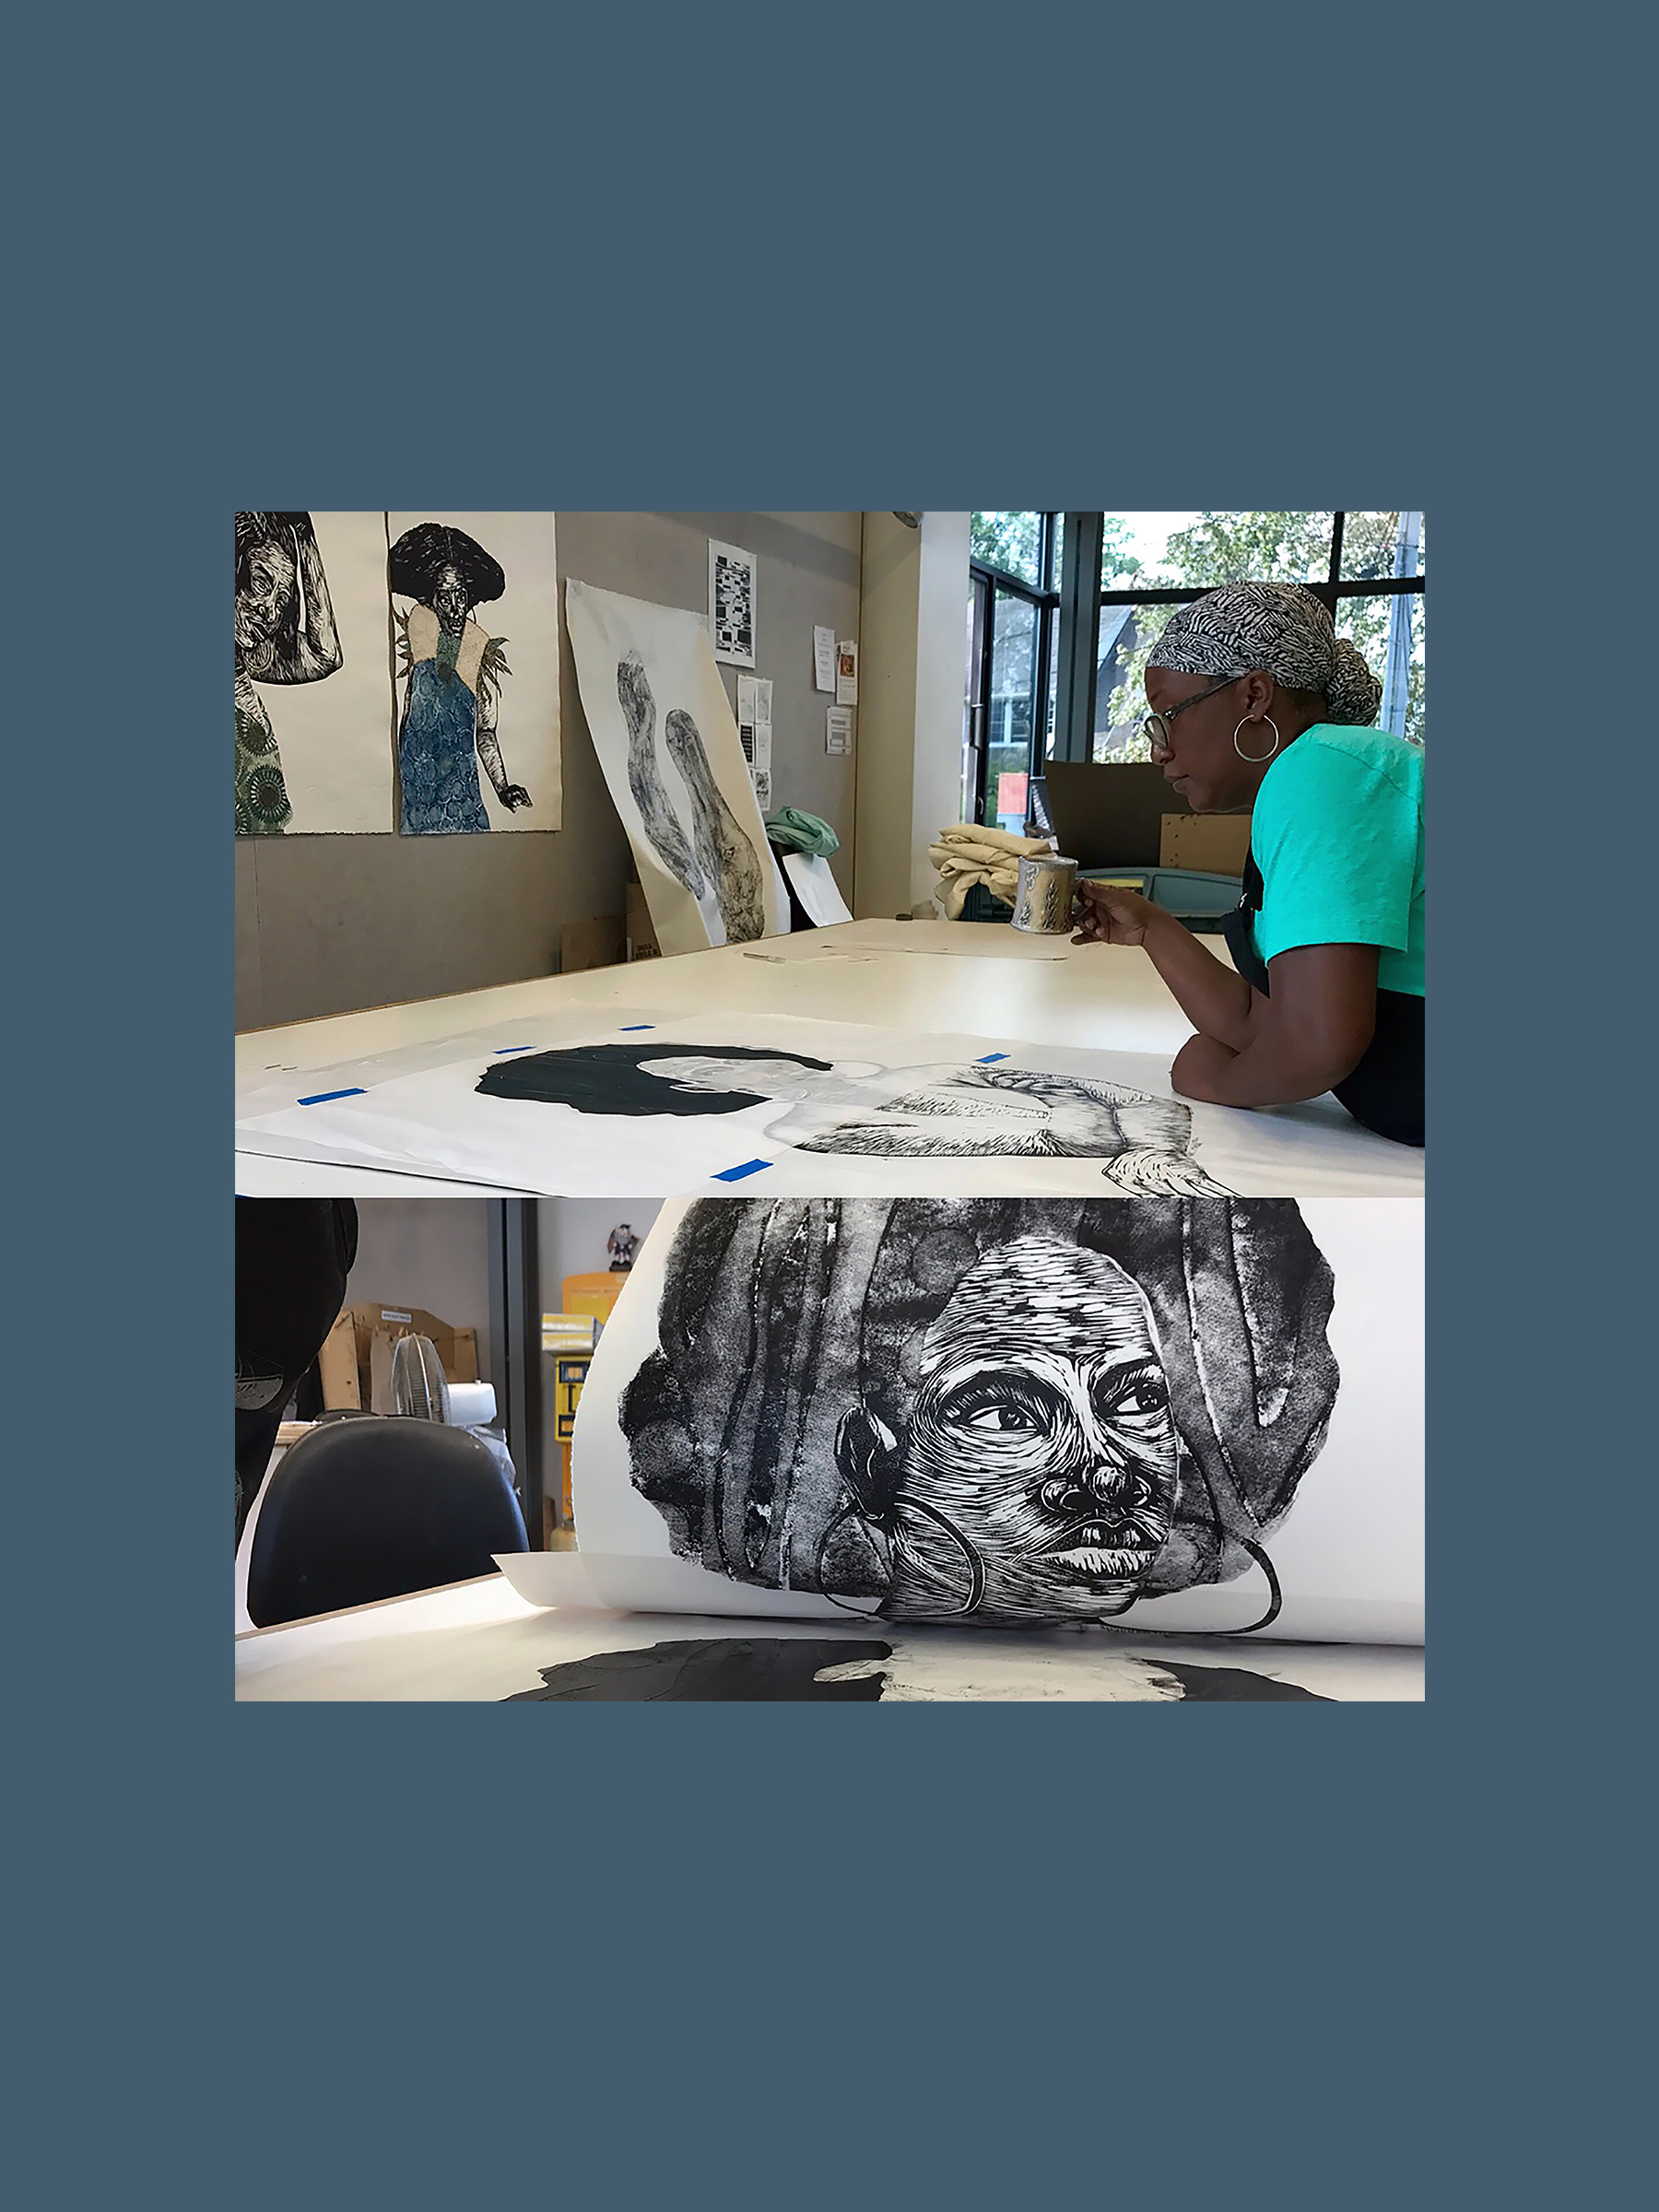 Delita Martin    Delita Martin is an artist currently based in Huffman, Texas. She received a BFA in drawing from Texas Southern University and a MFA in printmaking from Purdue University. Formally a member of the fine arts faculty at the University of Arkansas at Little Rock, Martin currently works as a full-time artist in her studio, Black Box Press. Working from Oral traditions, vintage and family photographs as a source of inspiration, Martin's work explores the power of the narrative impulse. Her process of layering various printmaking, drawing, sewing, collaging, and painting techniques allow her to create portraits that fuses the real and the fantastic.   +  delita martin in her print studio.